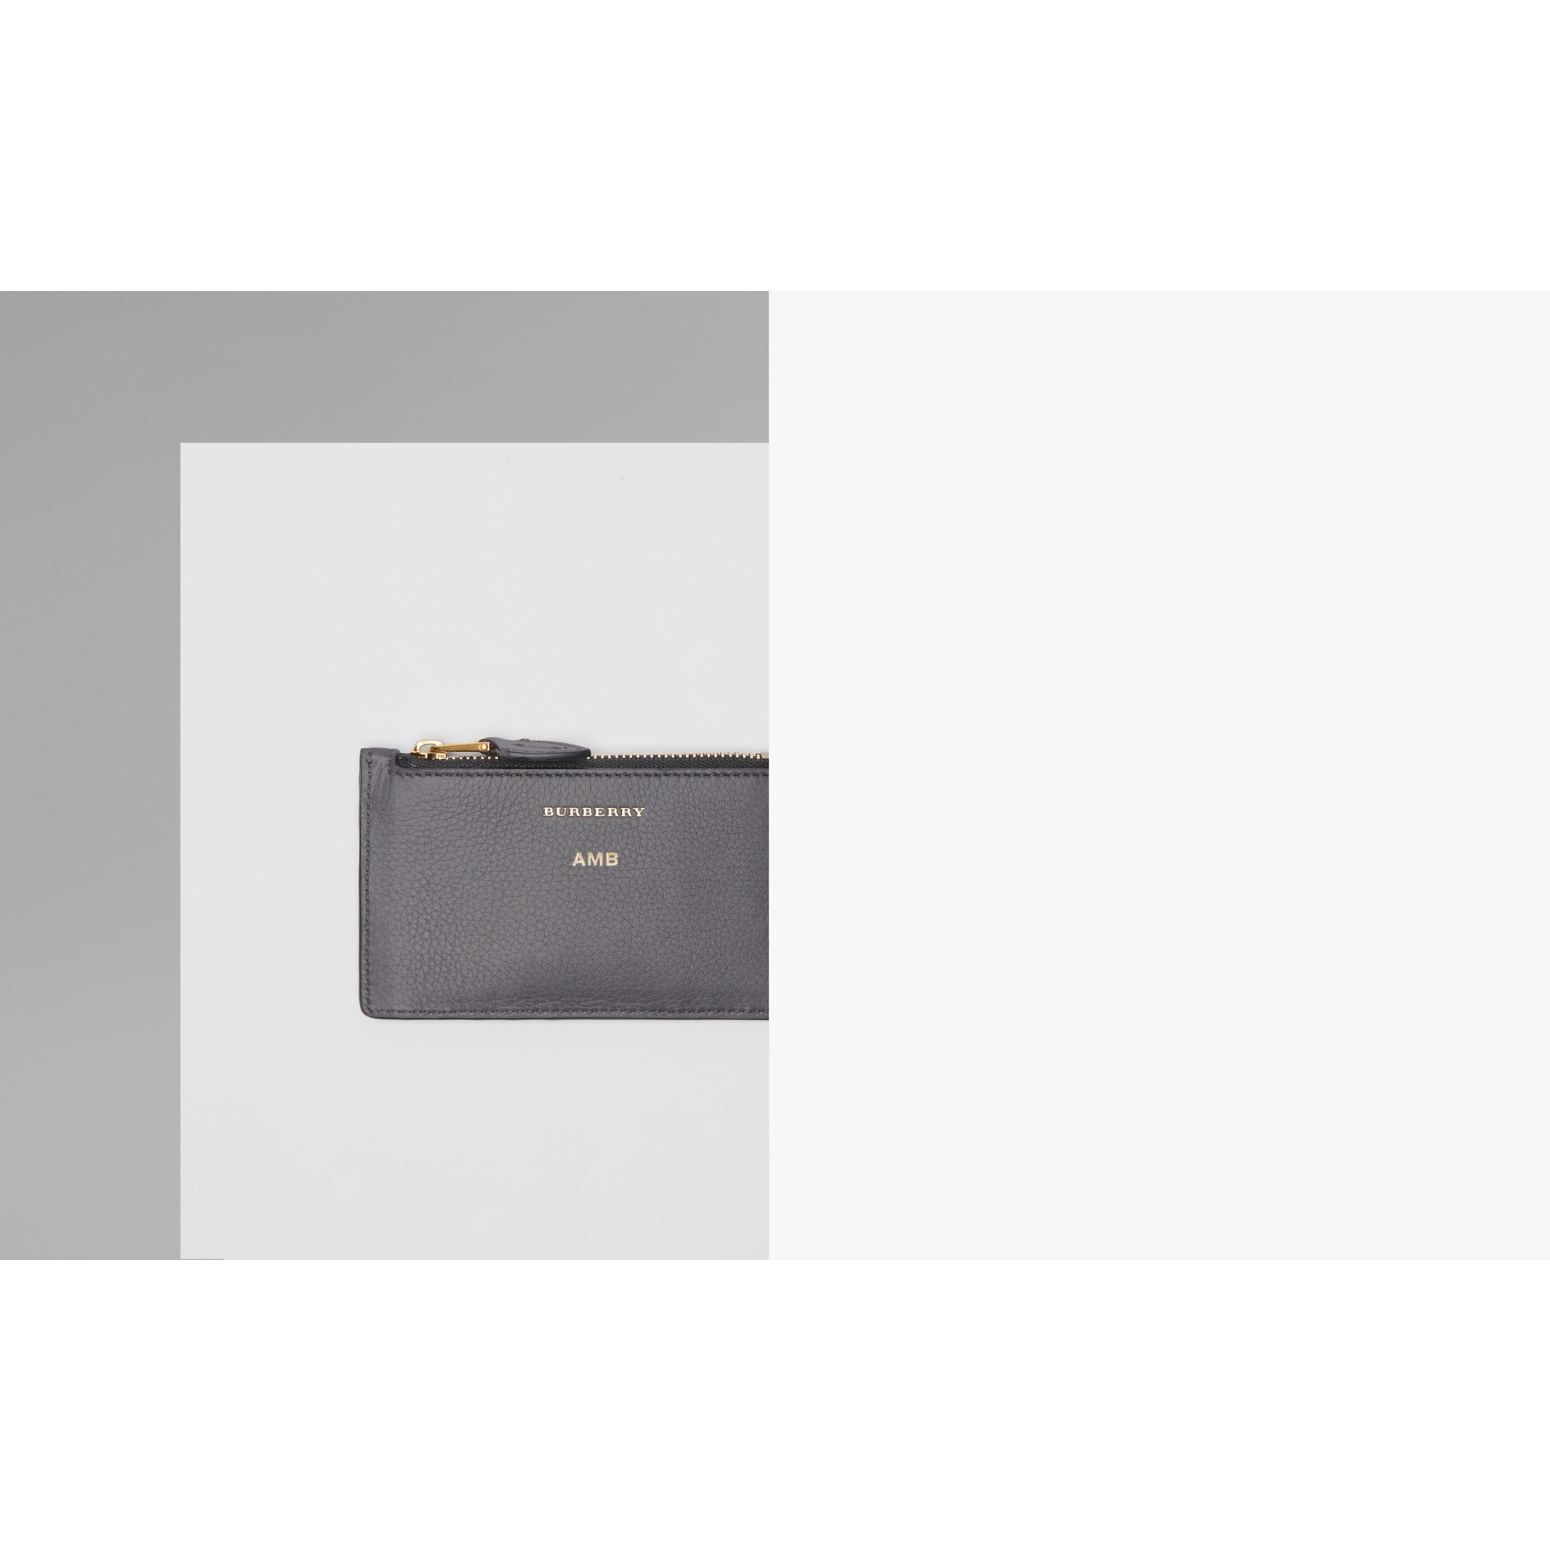 Two-tone Leather Card Case in Charcoal Grey - Women | Burberry - gallery image 1